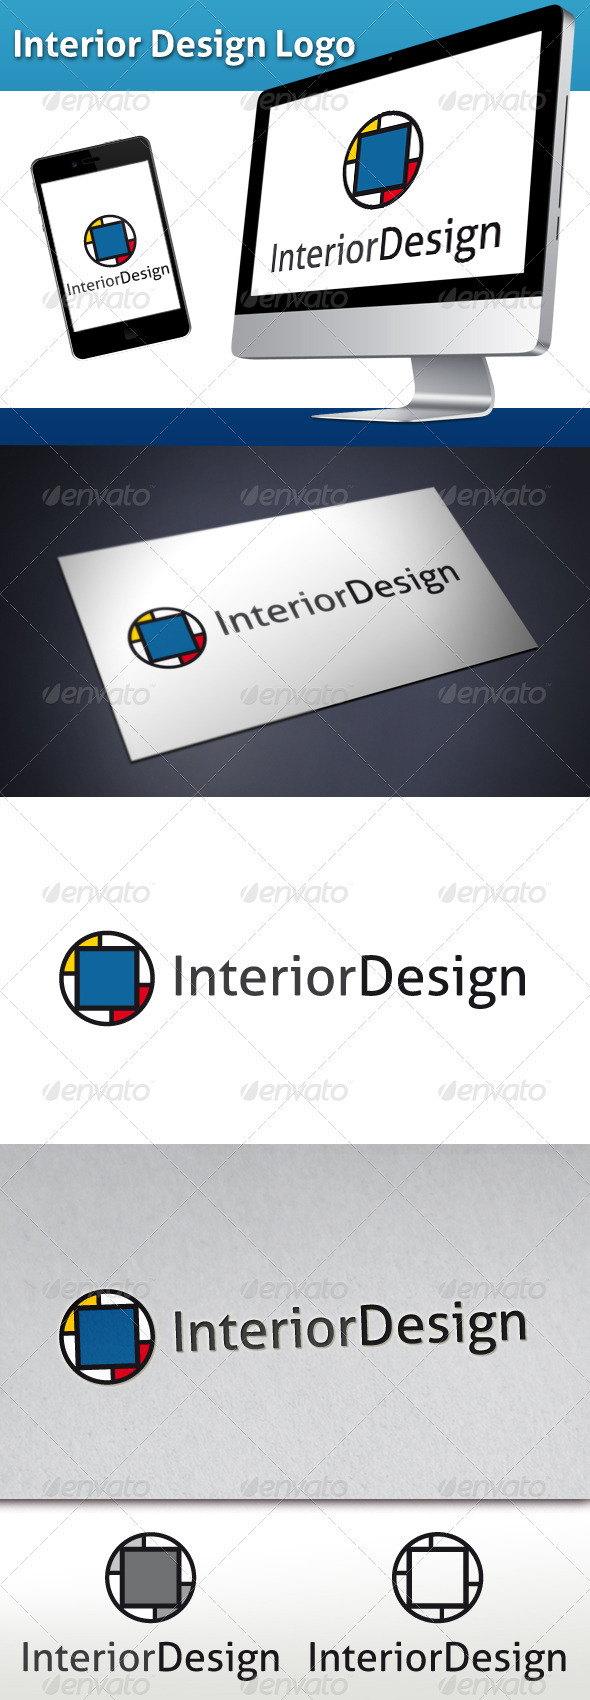 Interior Design Logo - Abstract Logo Templates